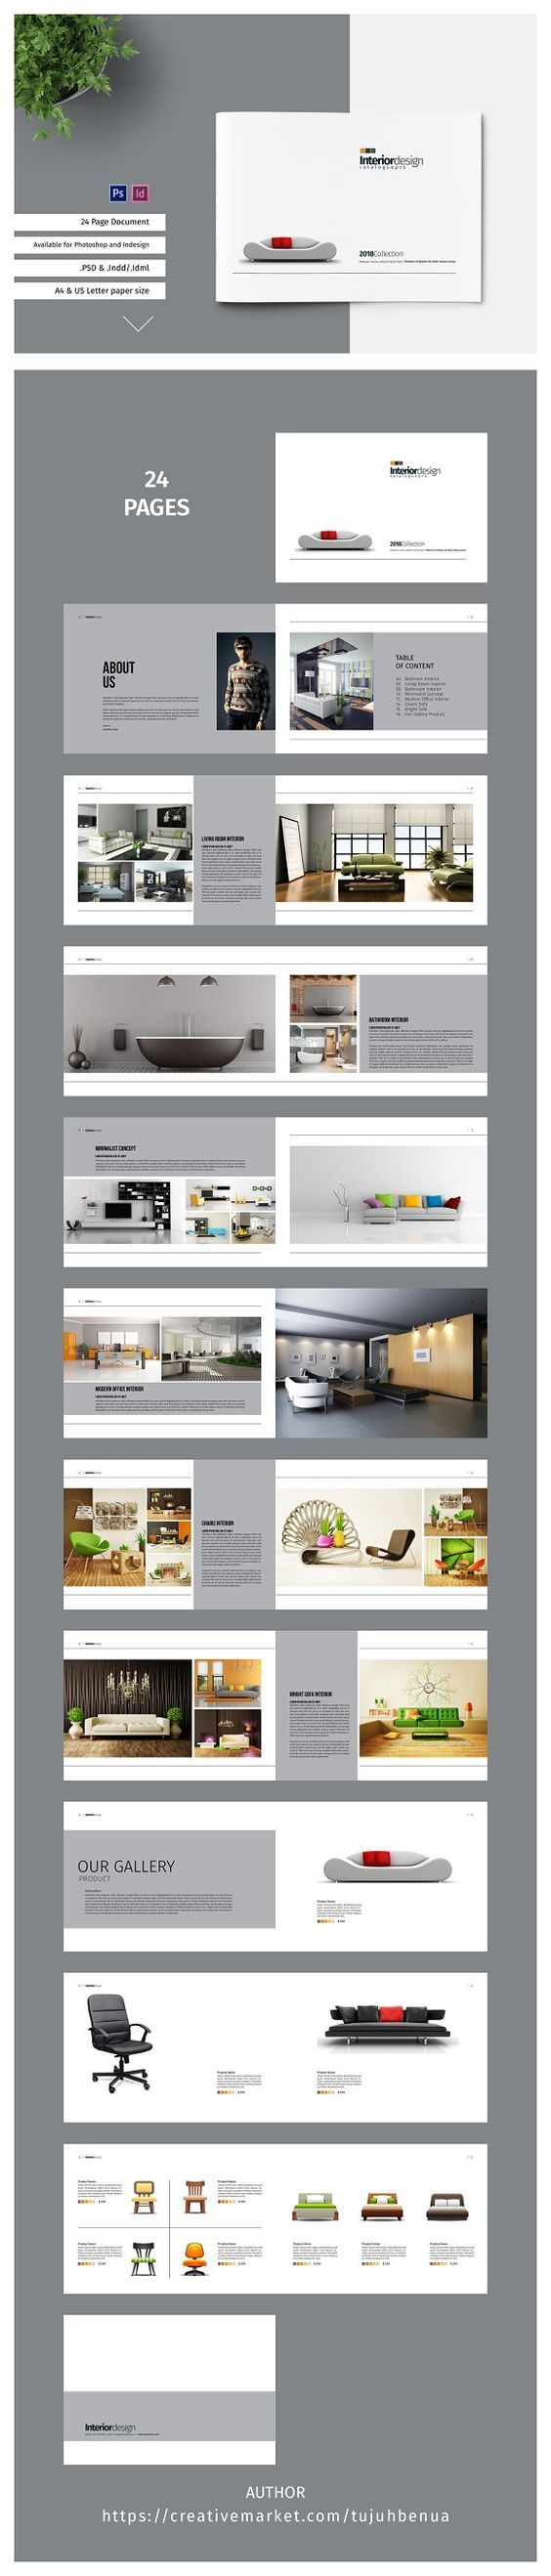 The 25+ best Portfolio pdf ideas on Pinterest | Portfolio design ...